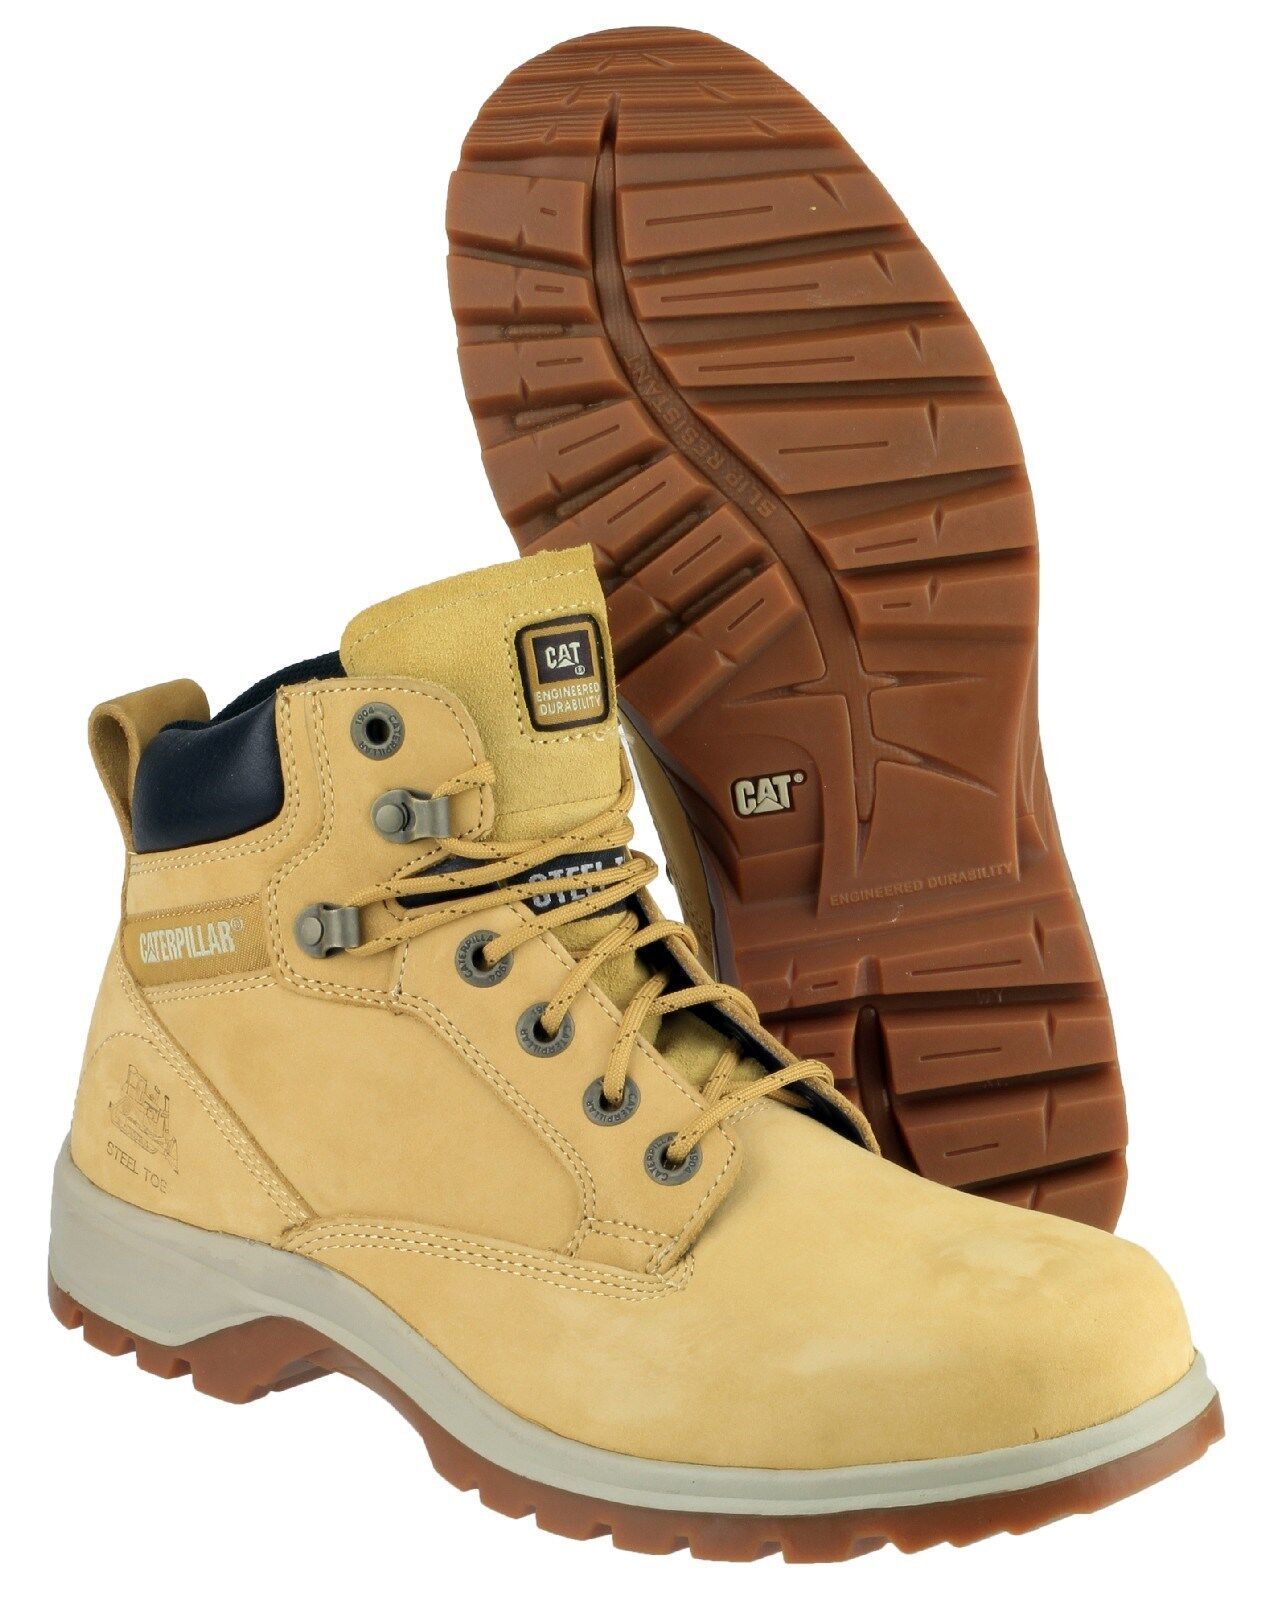 CAT Caterpillar Kitson Safety Boots Womens Steel Toe Cap Hiker Work Shoes 39f22387e8